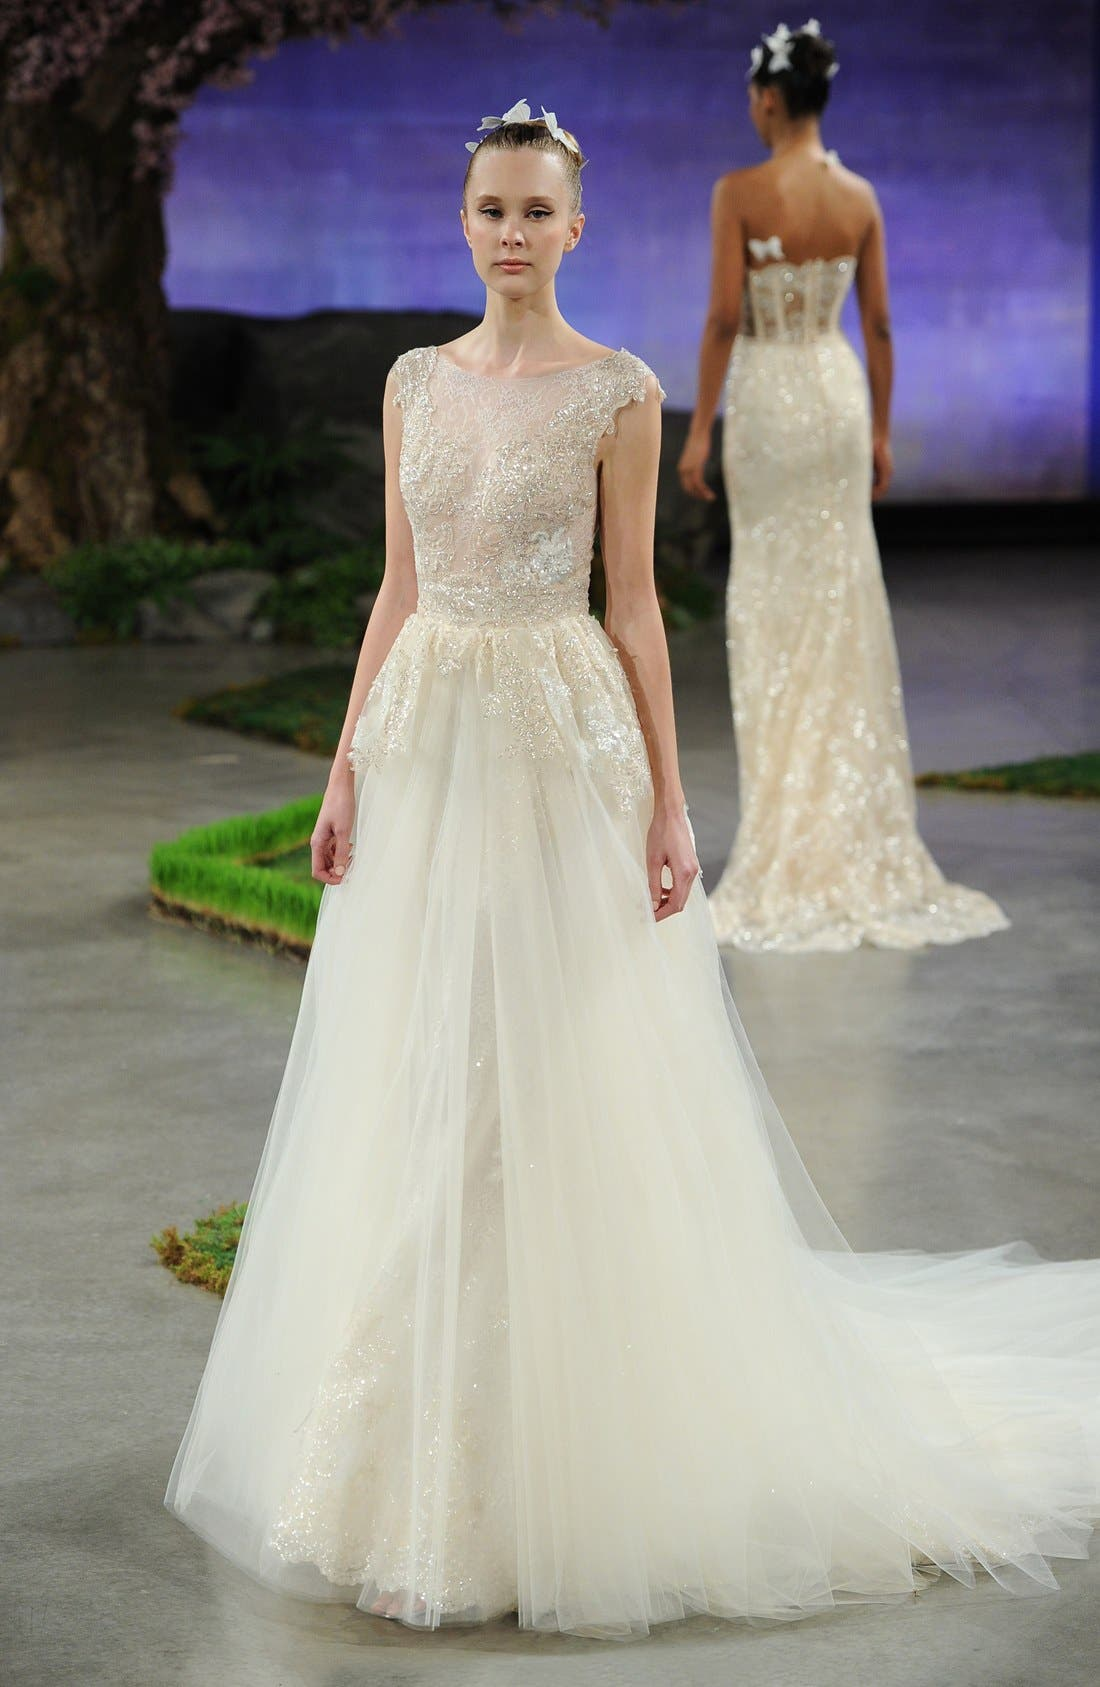 Alonda Embellished Lace Appliqué Trumpet Gown with Detachable Tulle Overskirt,                             Alternate thumbnail 5, color,                             900